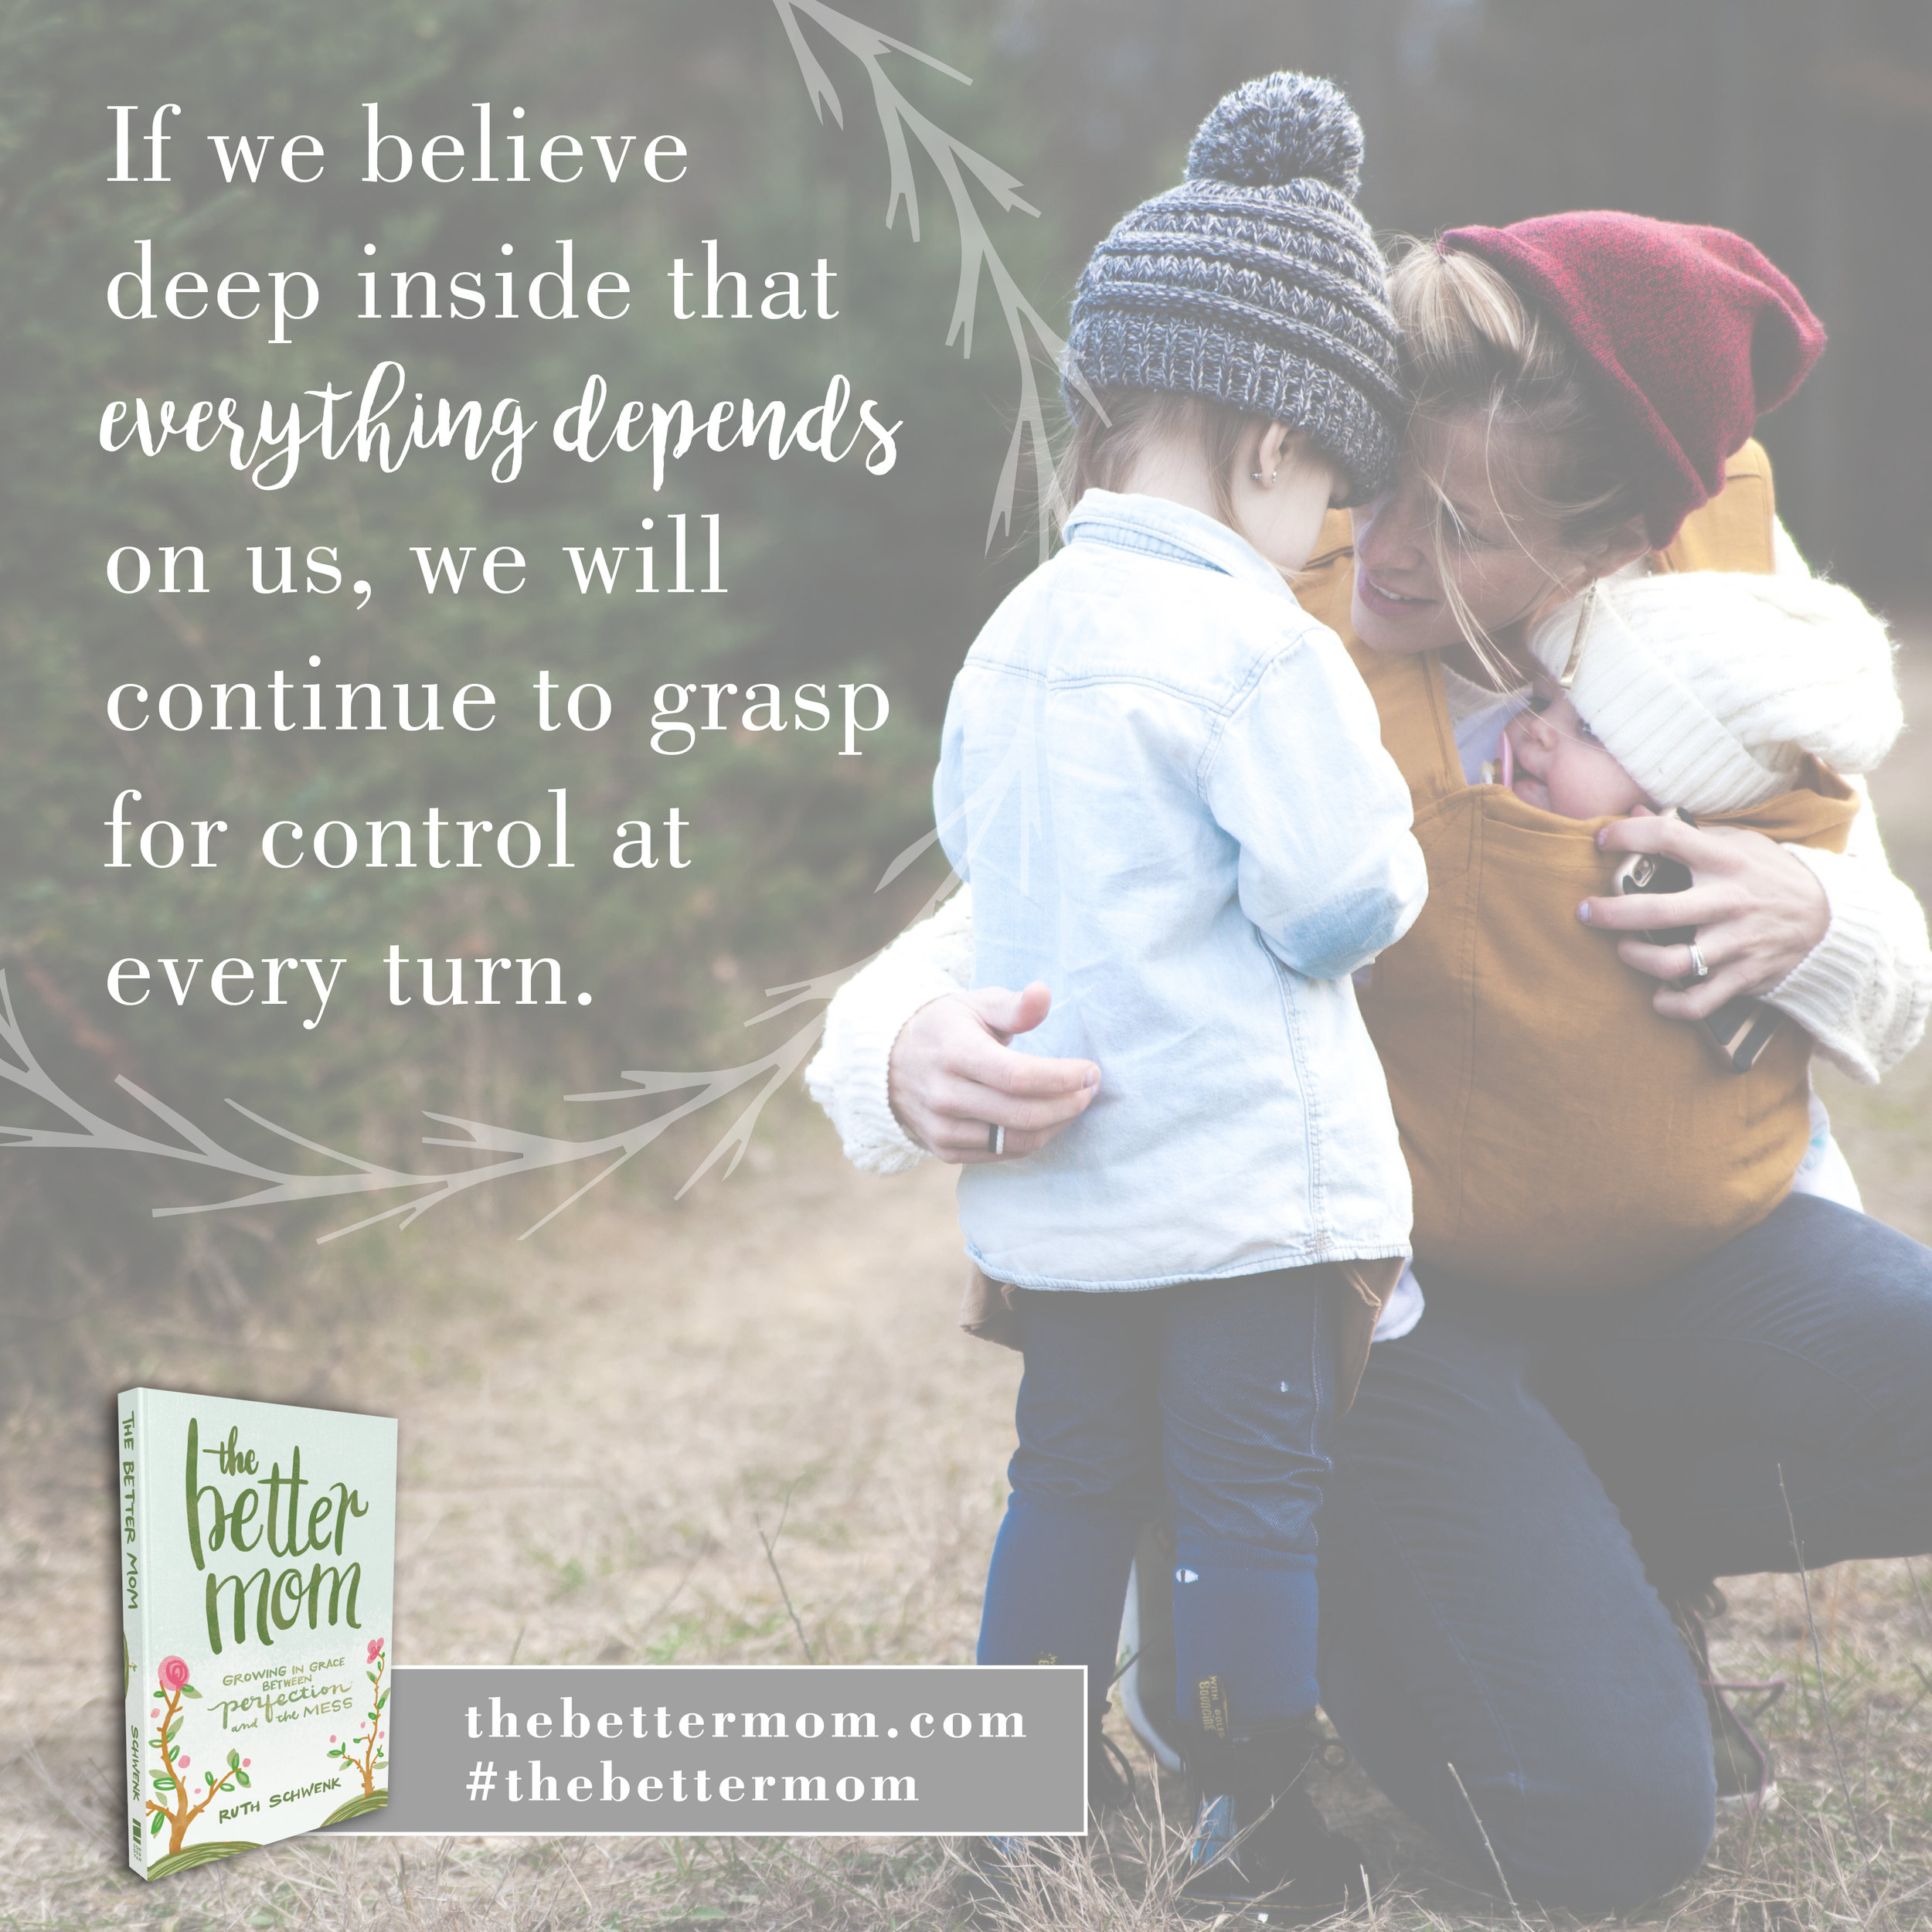 Moms, ever feel like EVERYTHING depends on you? Are you grasping for control at every turn?Good news! Everything  doesn't depend on us. We're not in this alone!God is with us, reigning and ruling over all things.Join me on the journey of growing in grace between perfection and the mess with my brand new book, The Better Mom! Just released!  #thebettermom